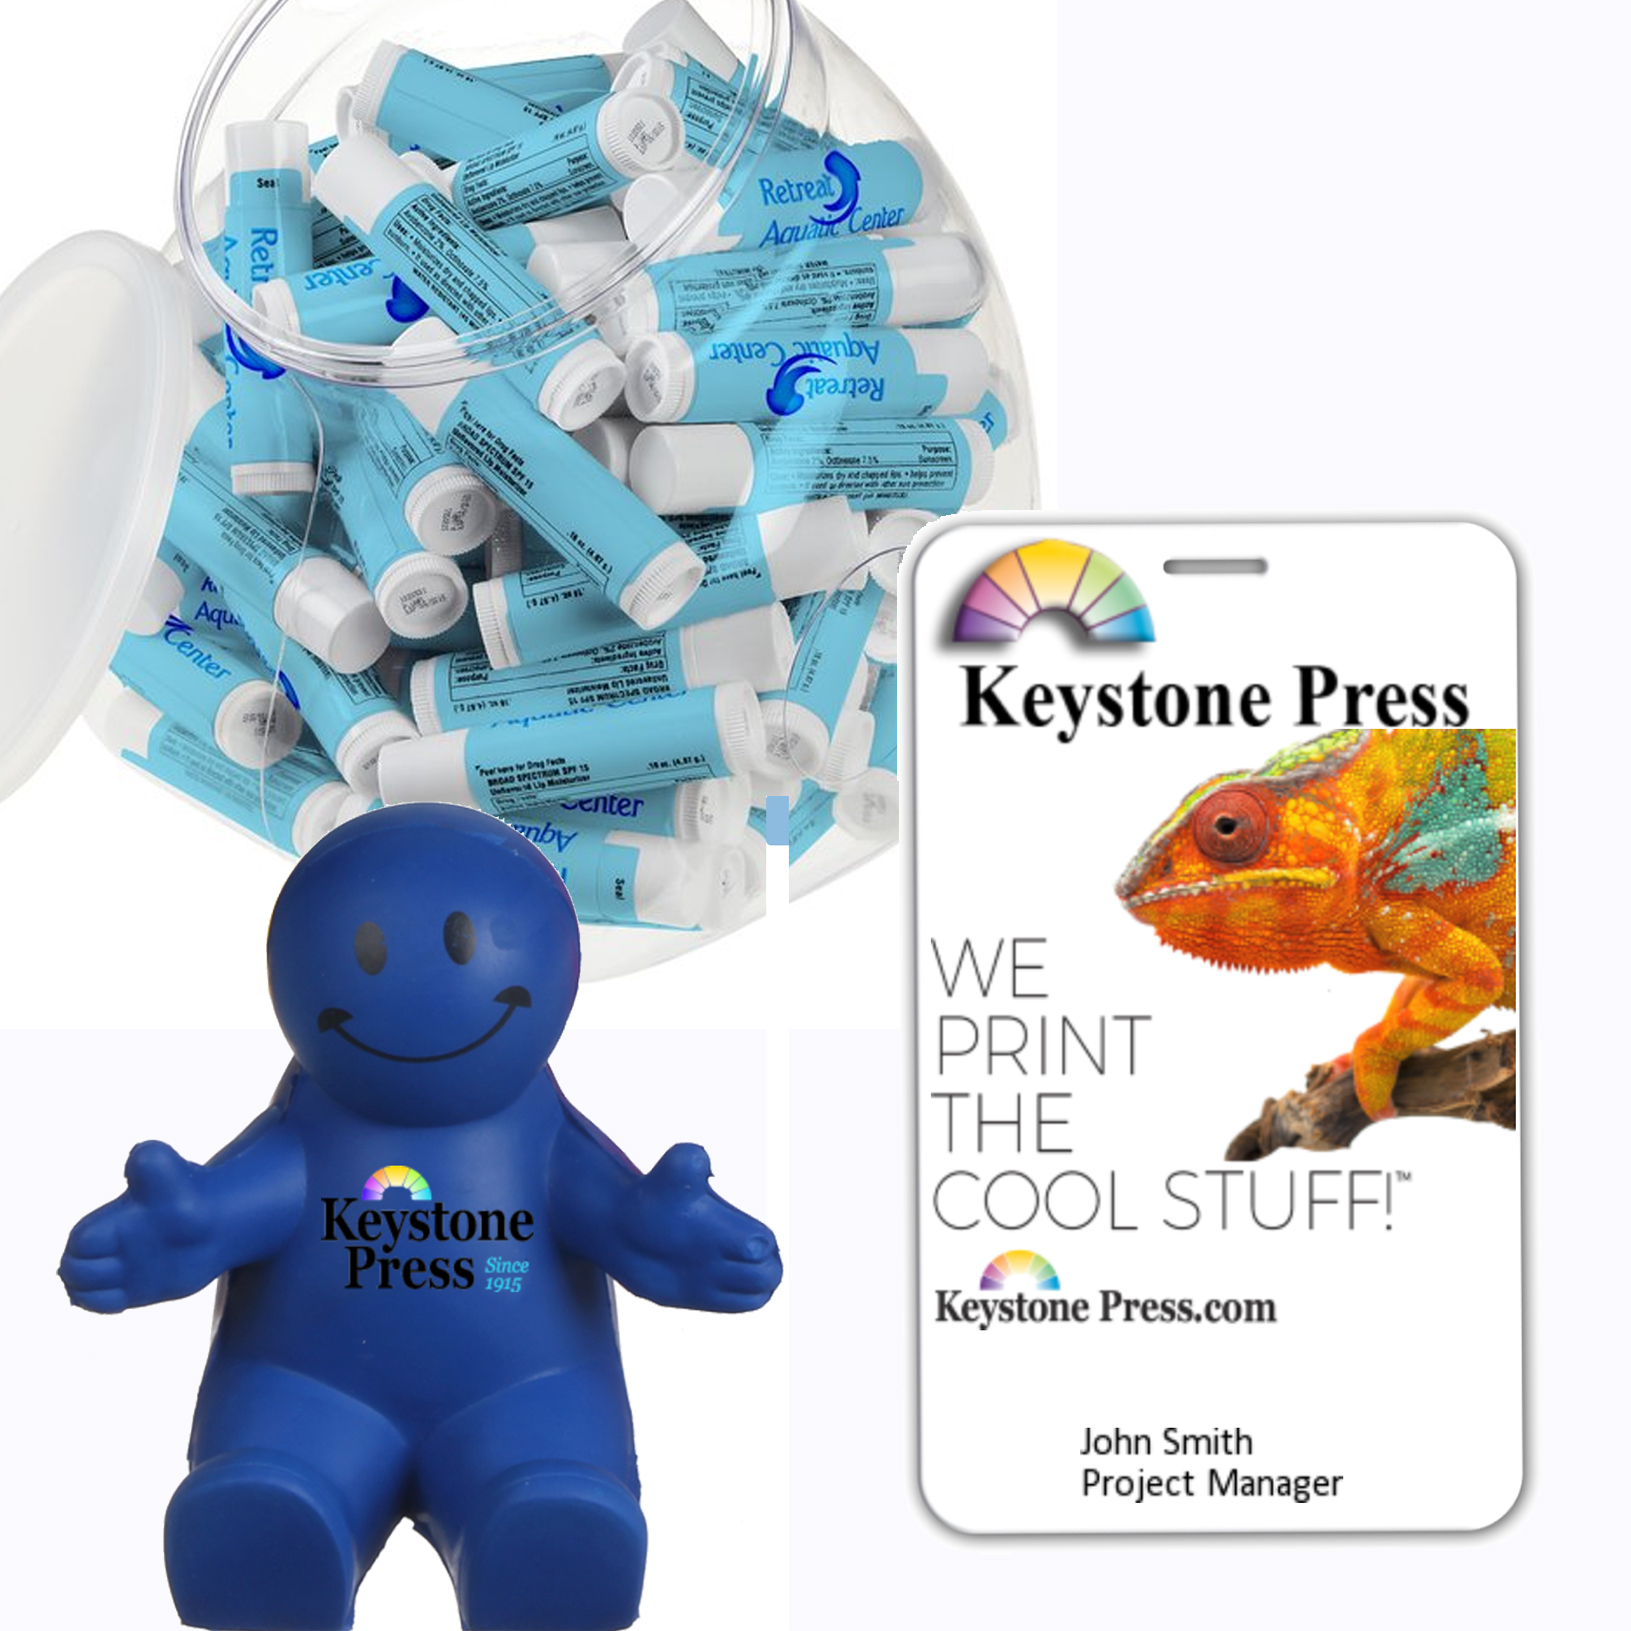 Keystone Press prints logo branded trade show giveaways, lanyards and ID tags